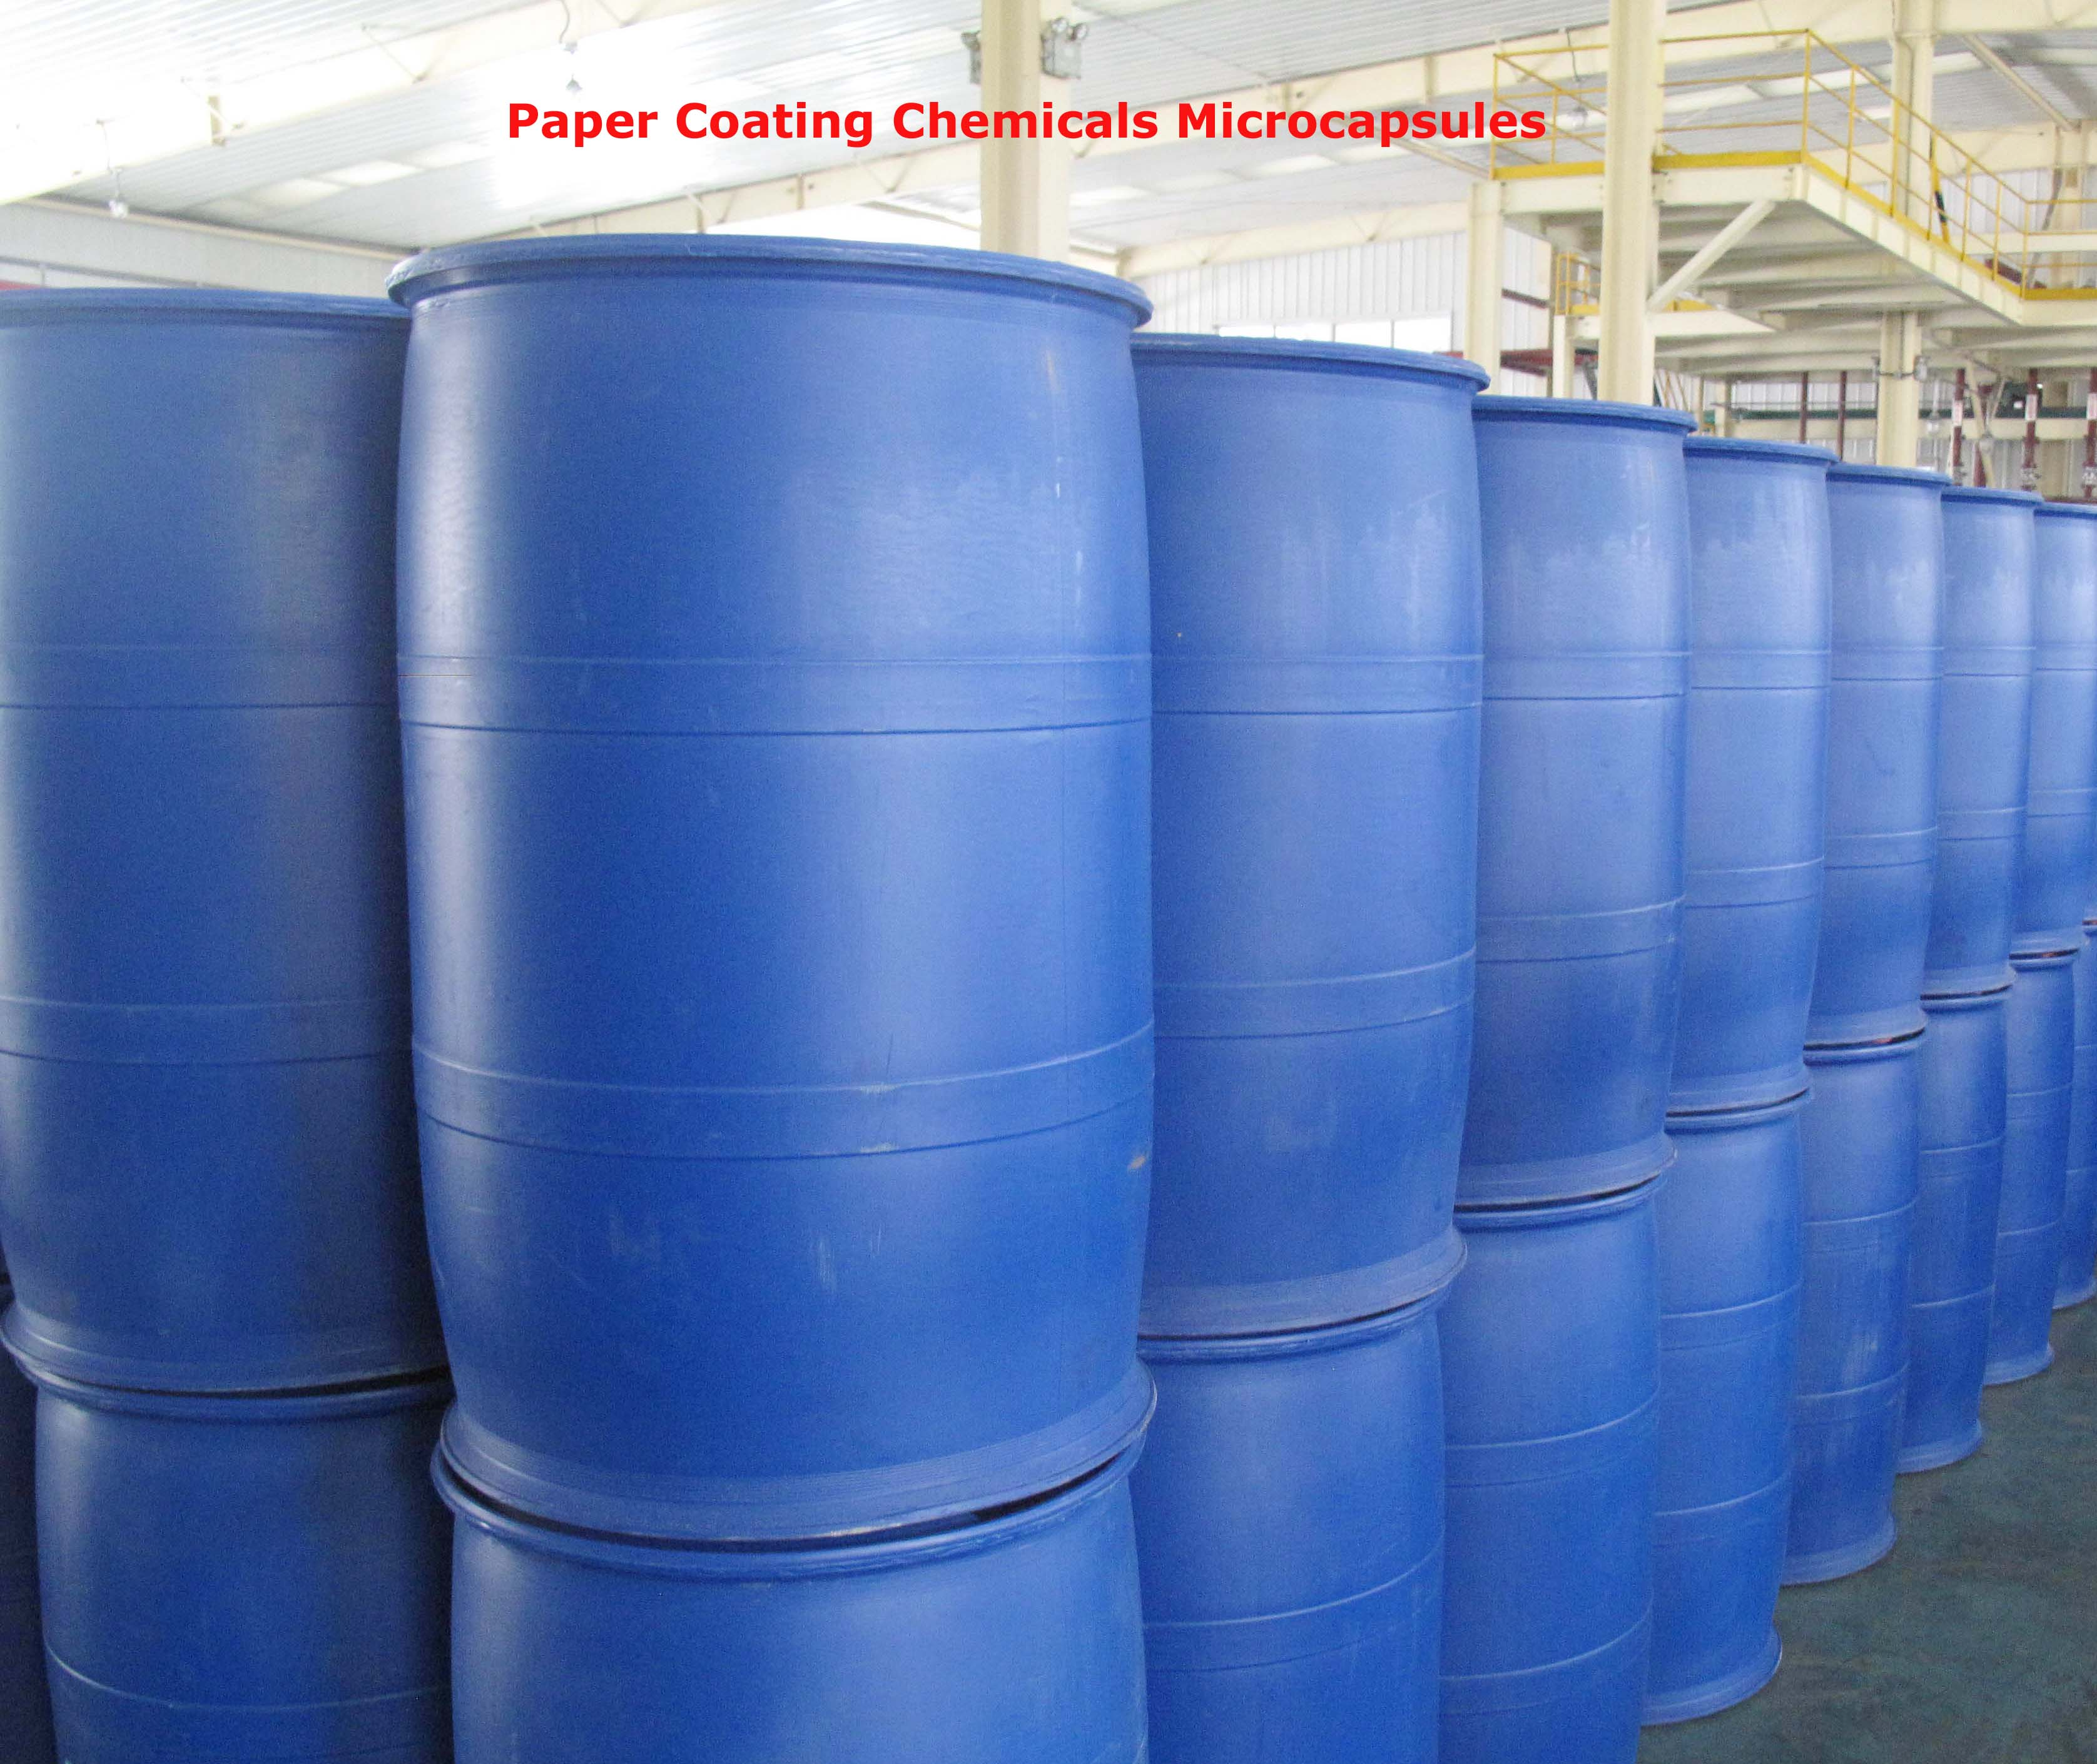 Paper Coating Chemicals NCR Coated Microcapsules